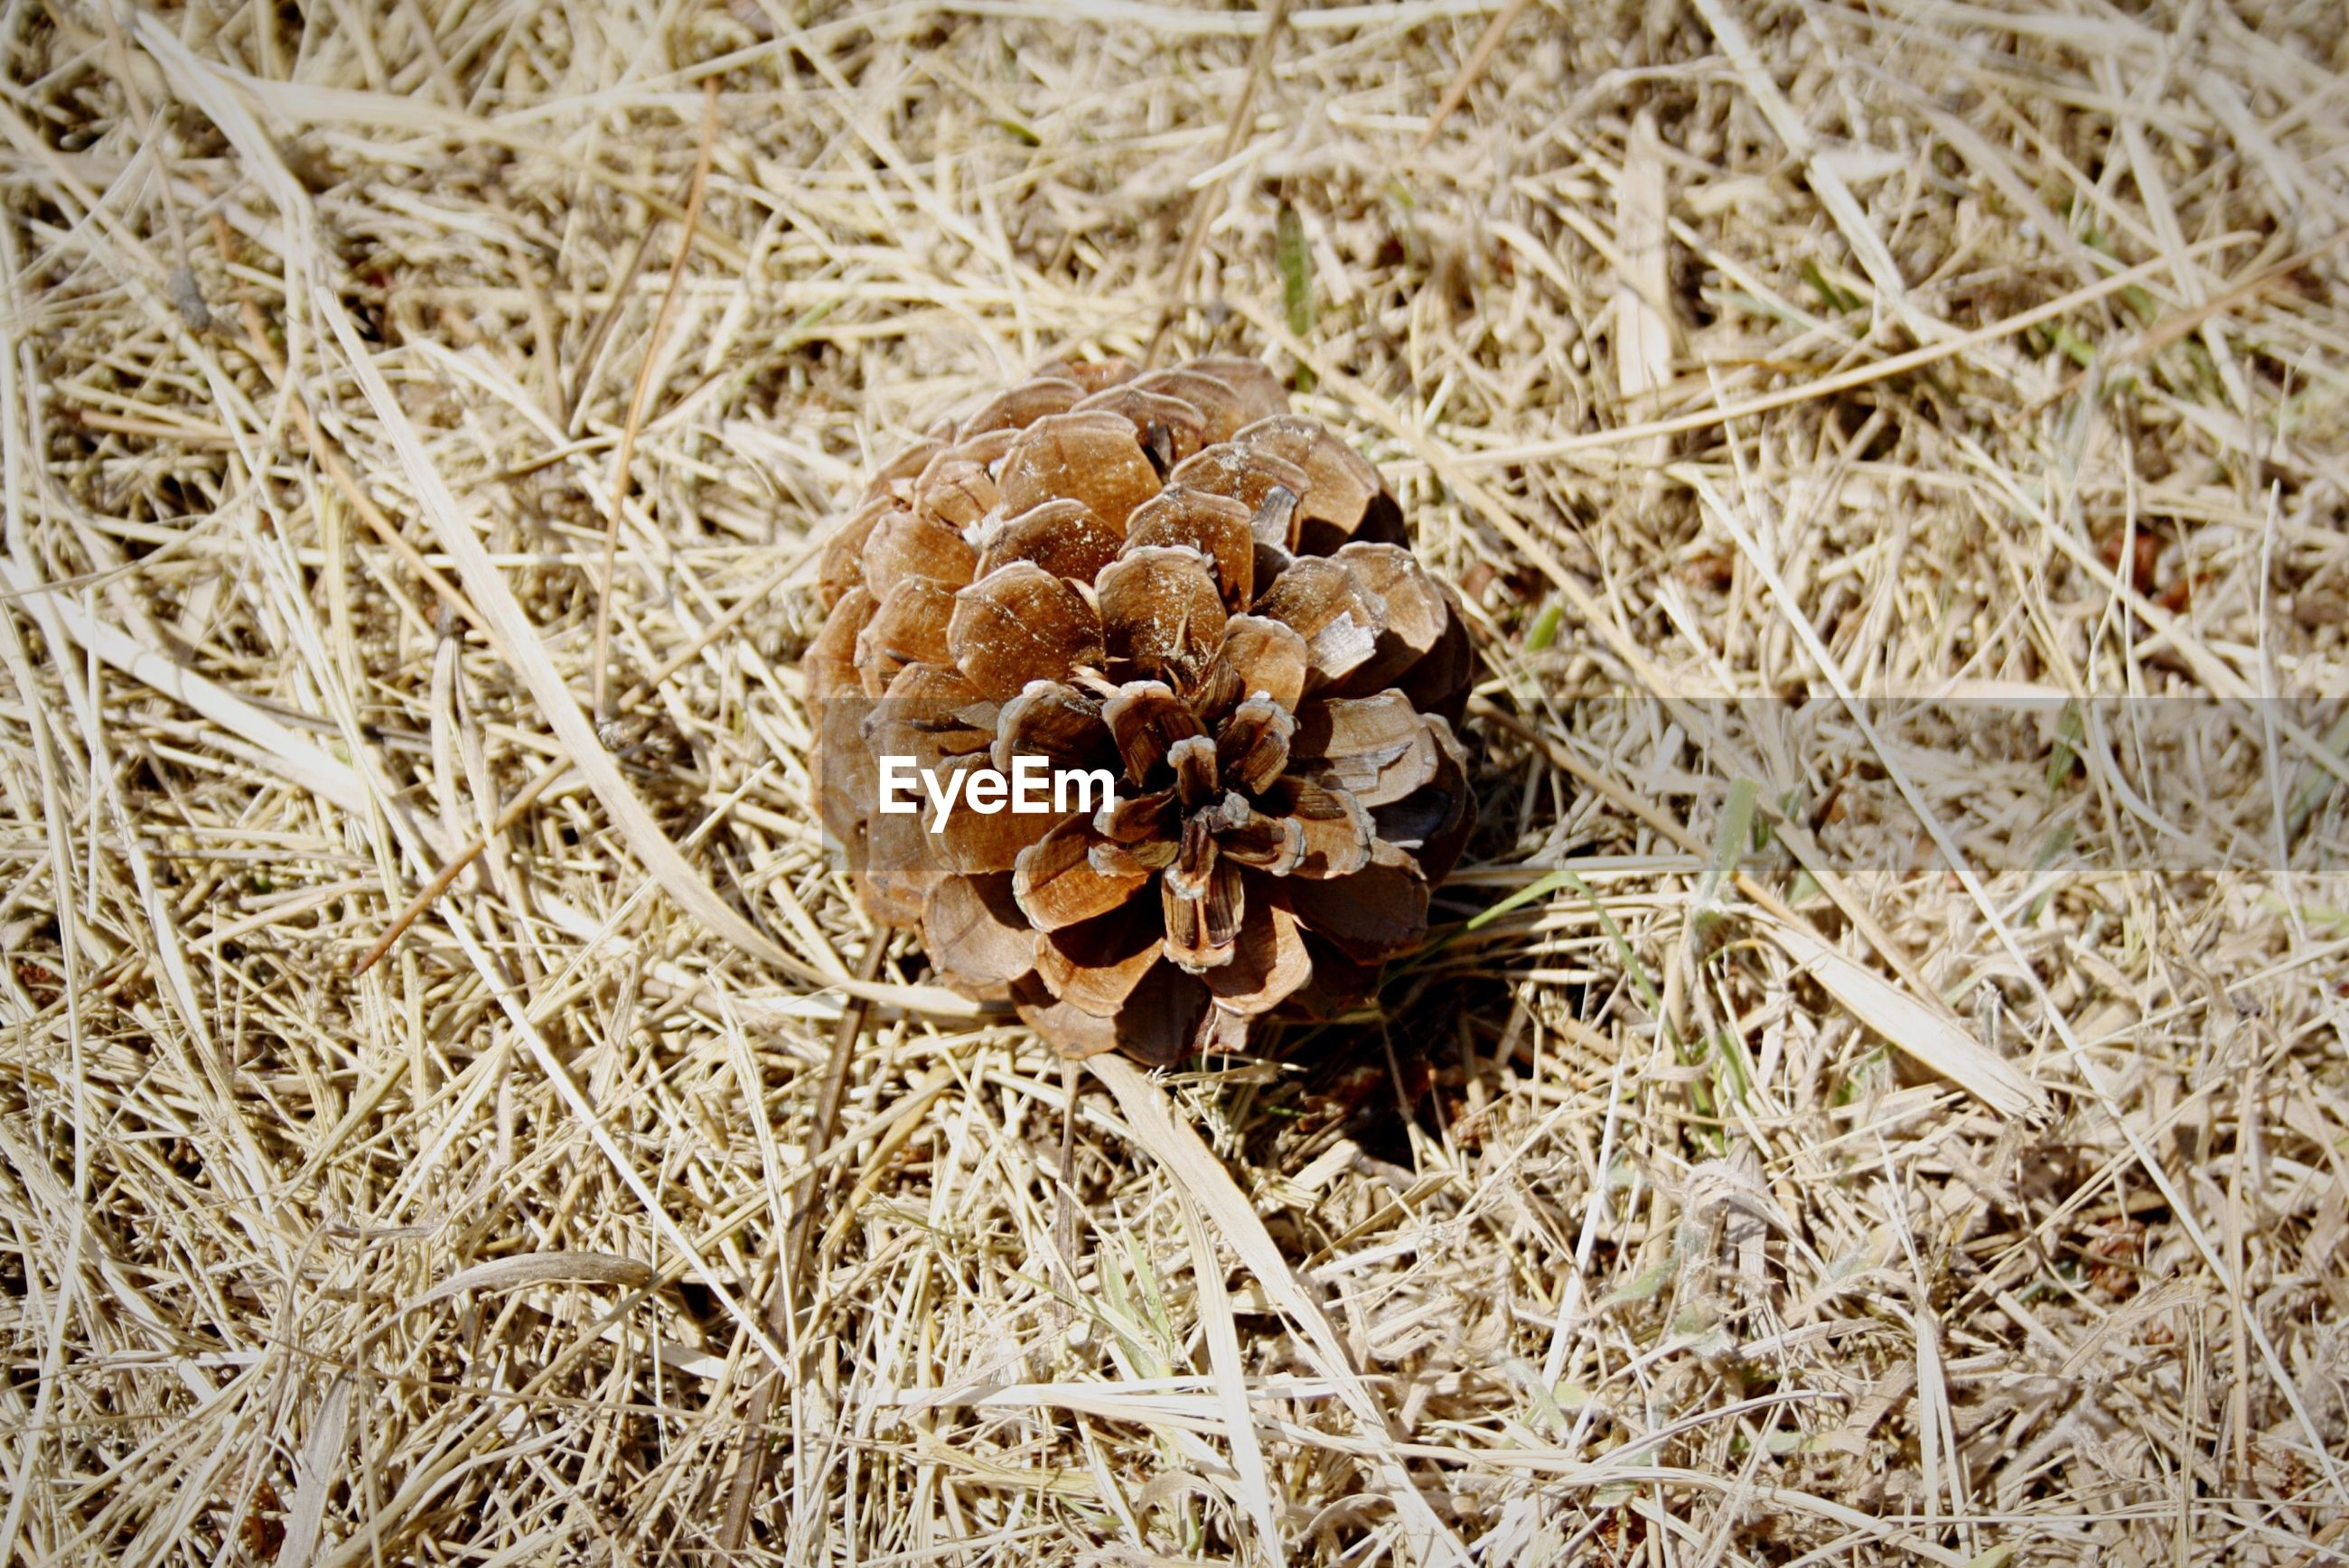 grass, field, dry, mushroom, nature, growth, fungus, close-up, high angle view, fragility, brown, plant, beauty in nature, pine cone, outdoors, day, no people, freshness, toadstool, uncultivated